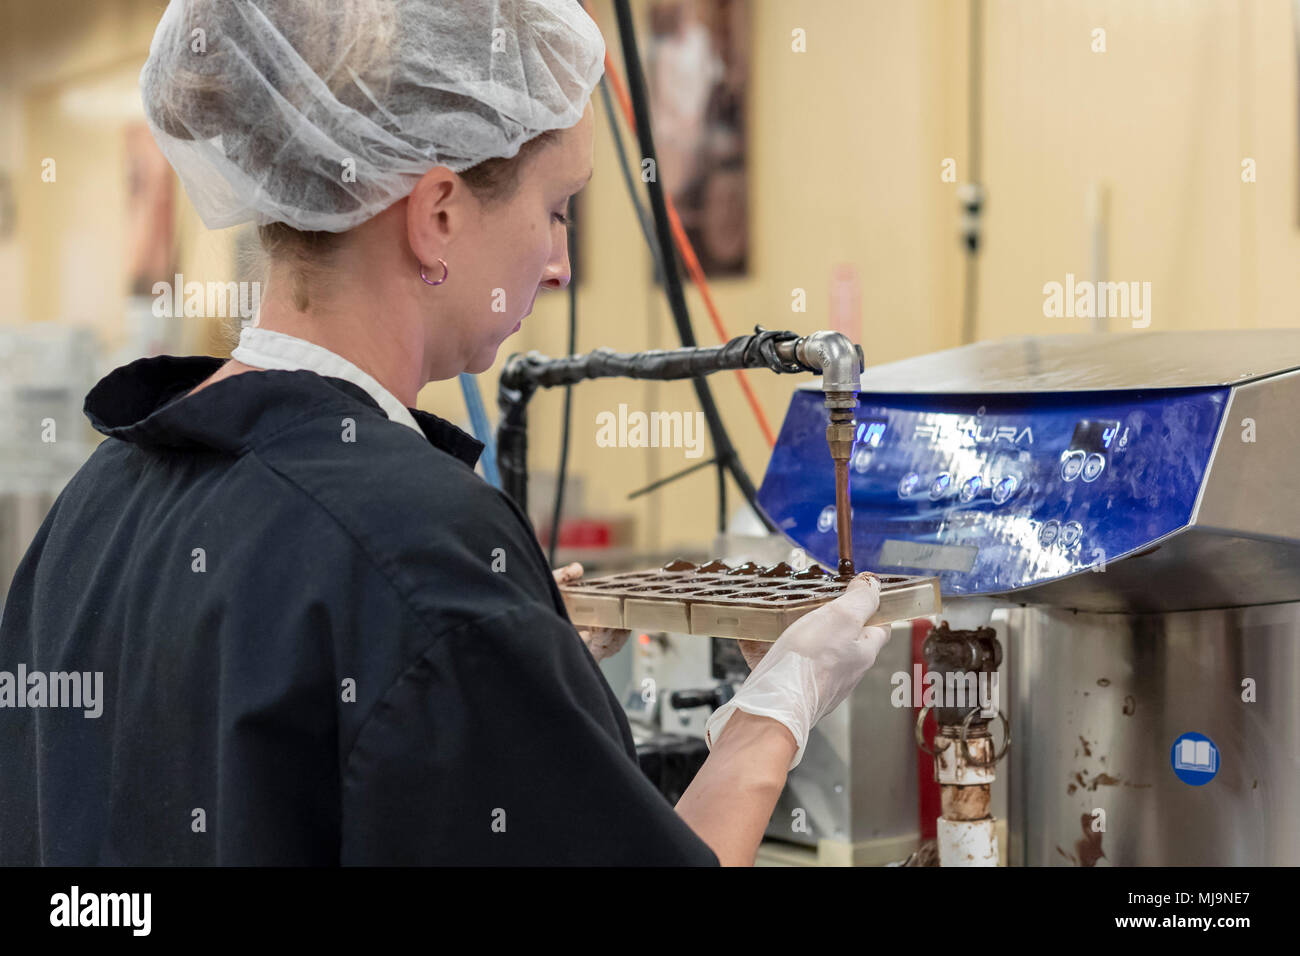 St. Augustine, Florida - A worker at the Whetstone Chocolates factory. The company makes and sells artisan chocolates in St. Augustine's historic dist - Stock Image